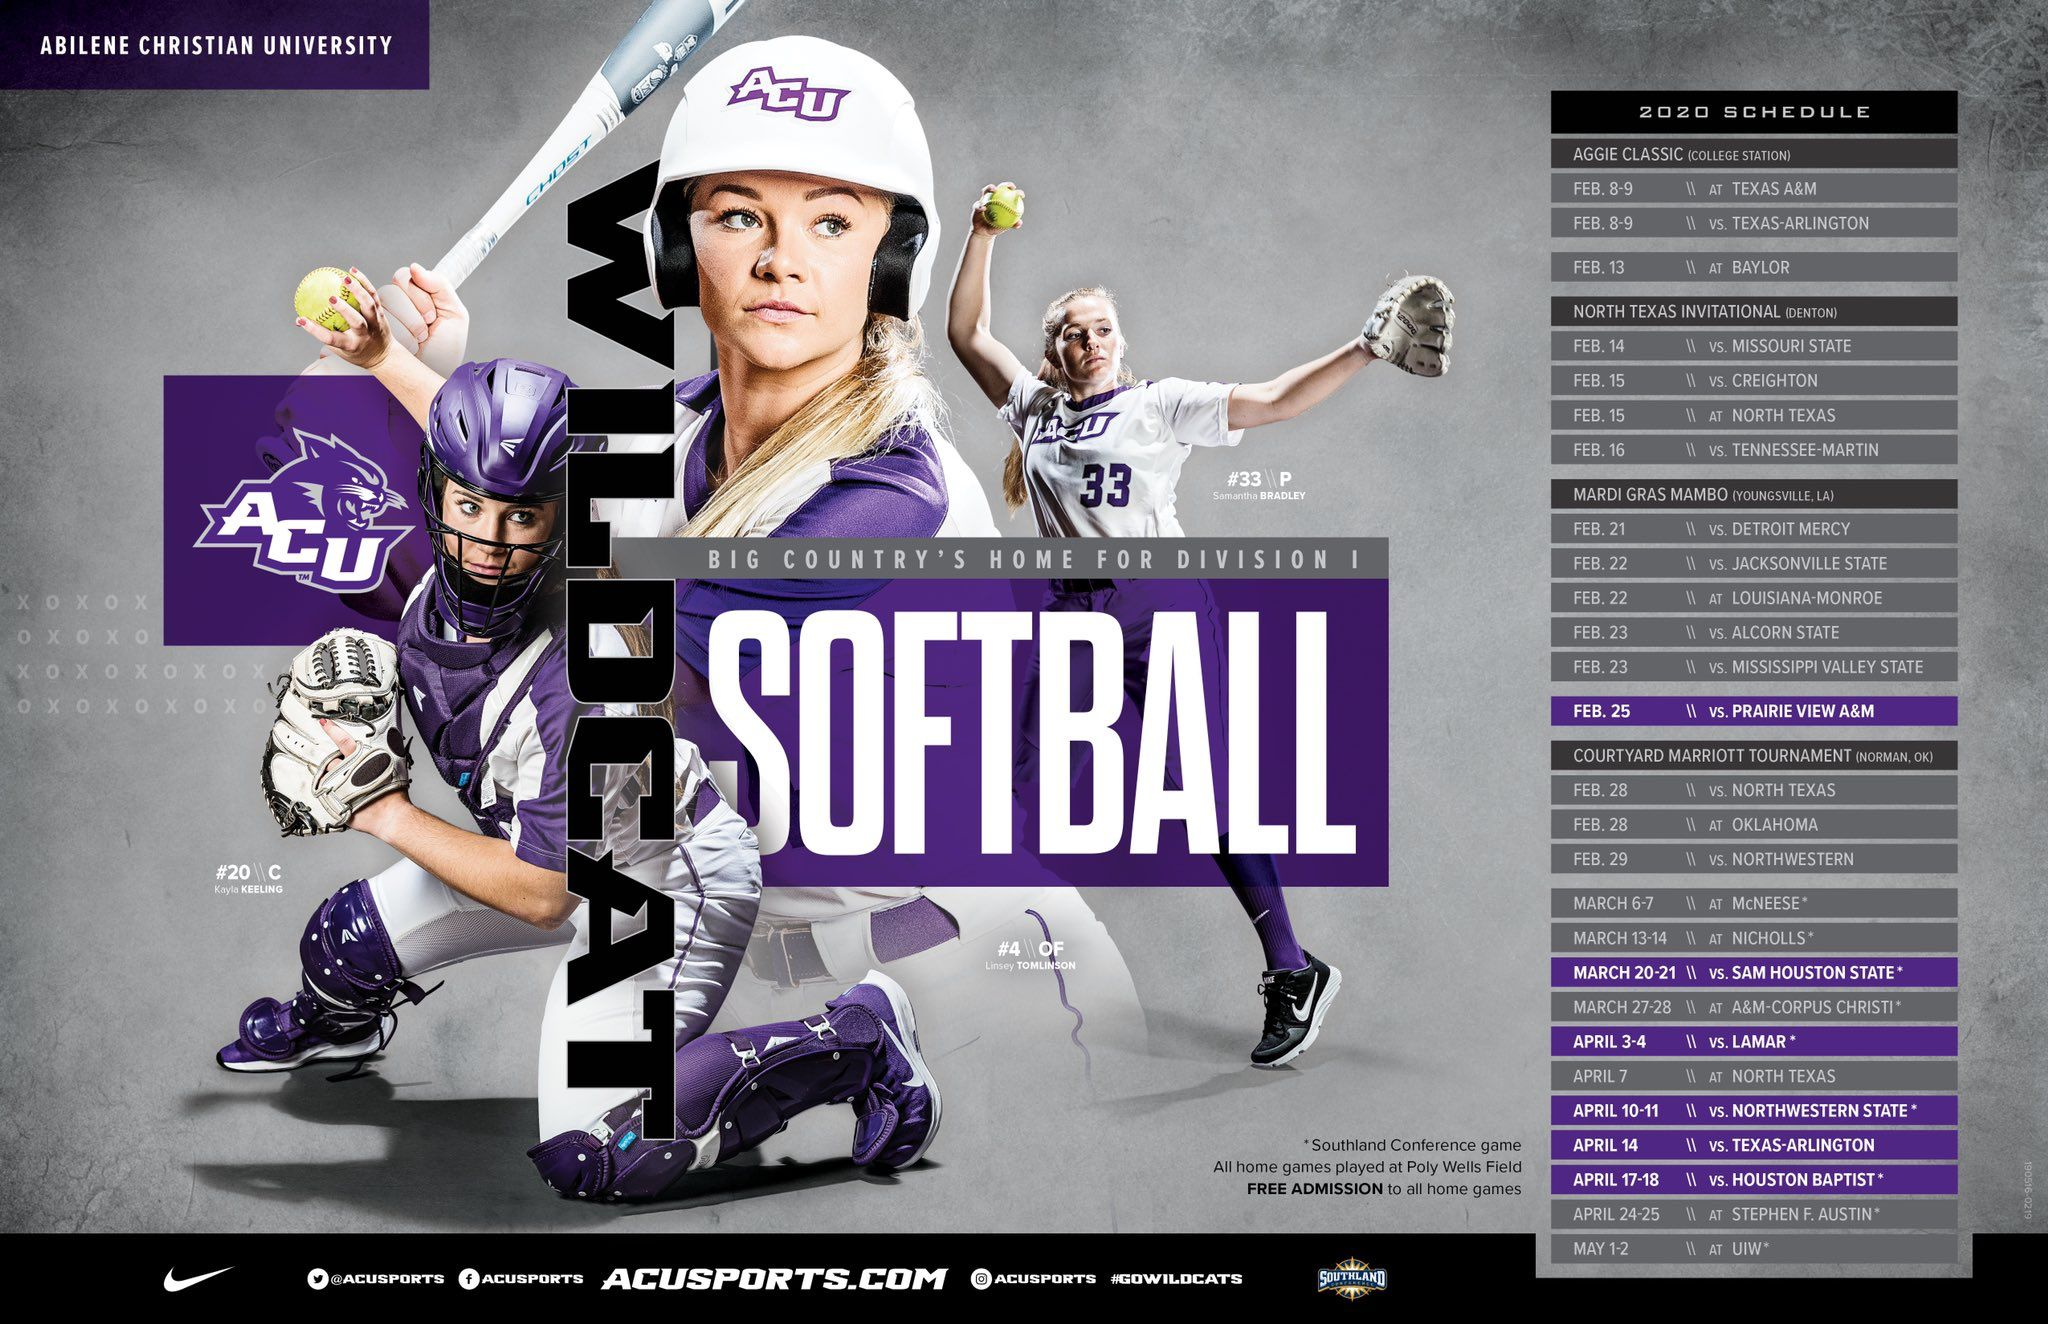 Pin By Josh Neuhart On Sposters In 2020 Sports Graphics Abilene Christian Big Country